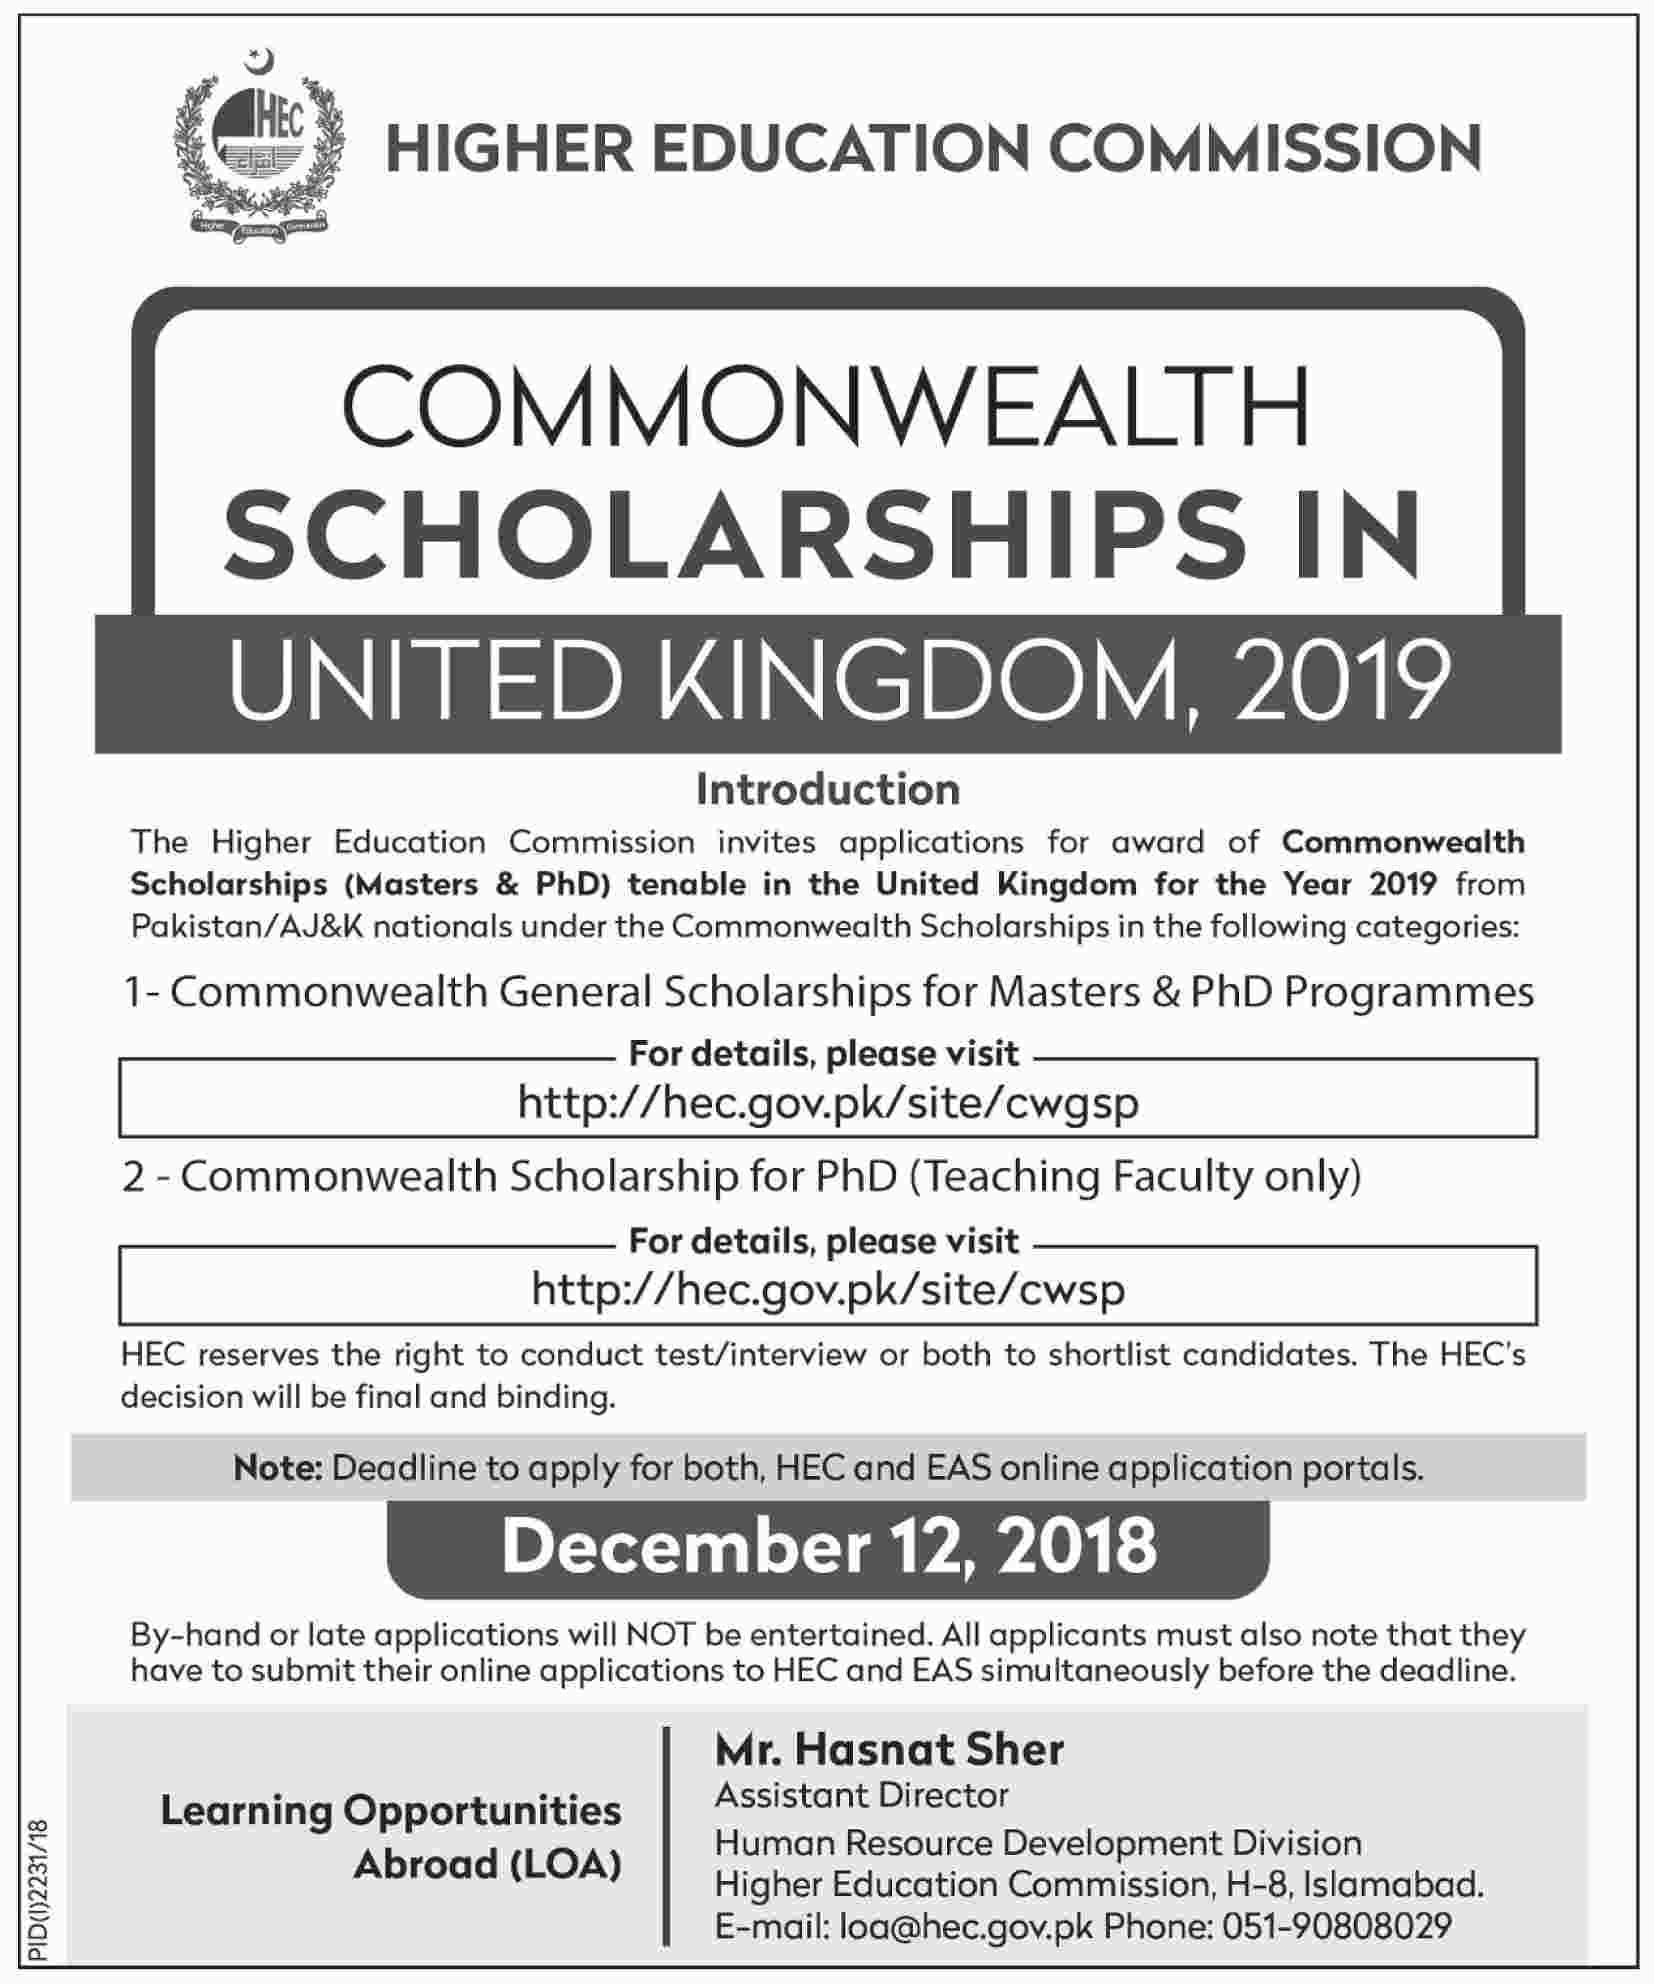 HEC Commonwealth Scholarships (Masters & PhD) in United Kingdom, 2019